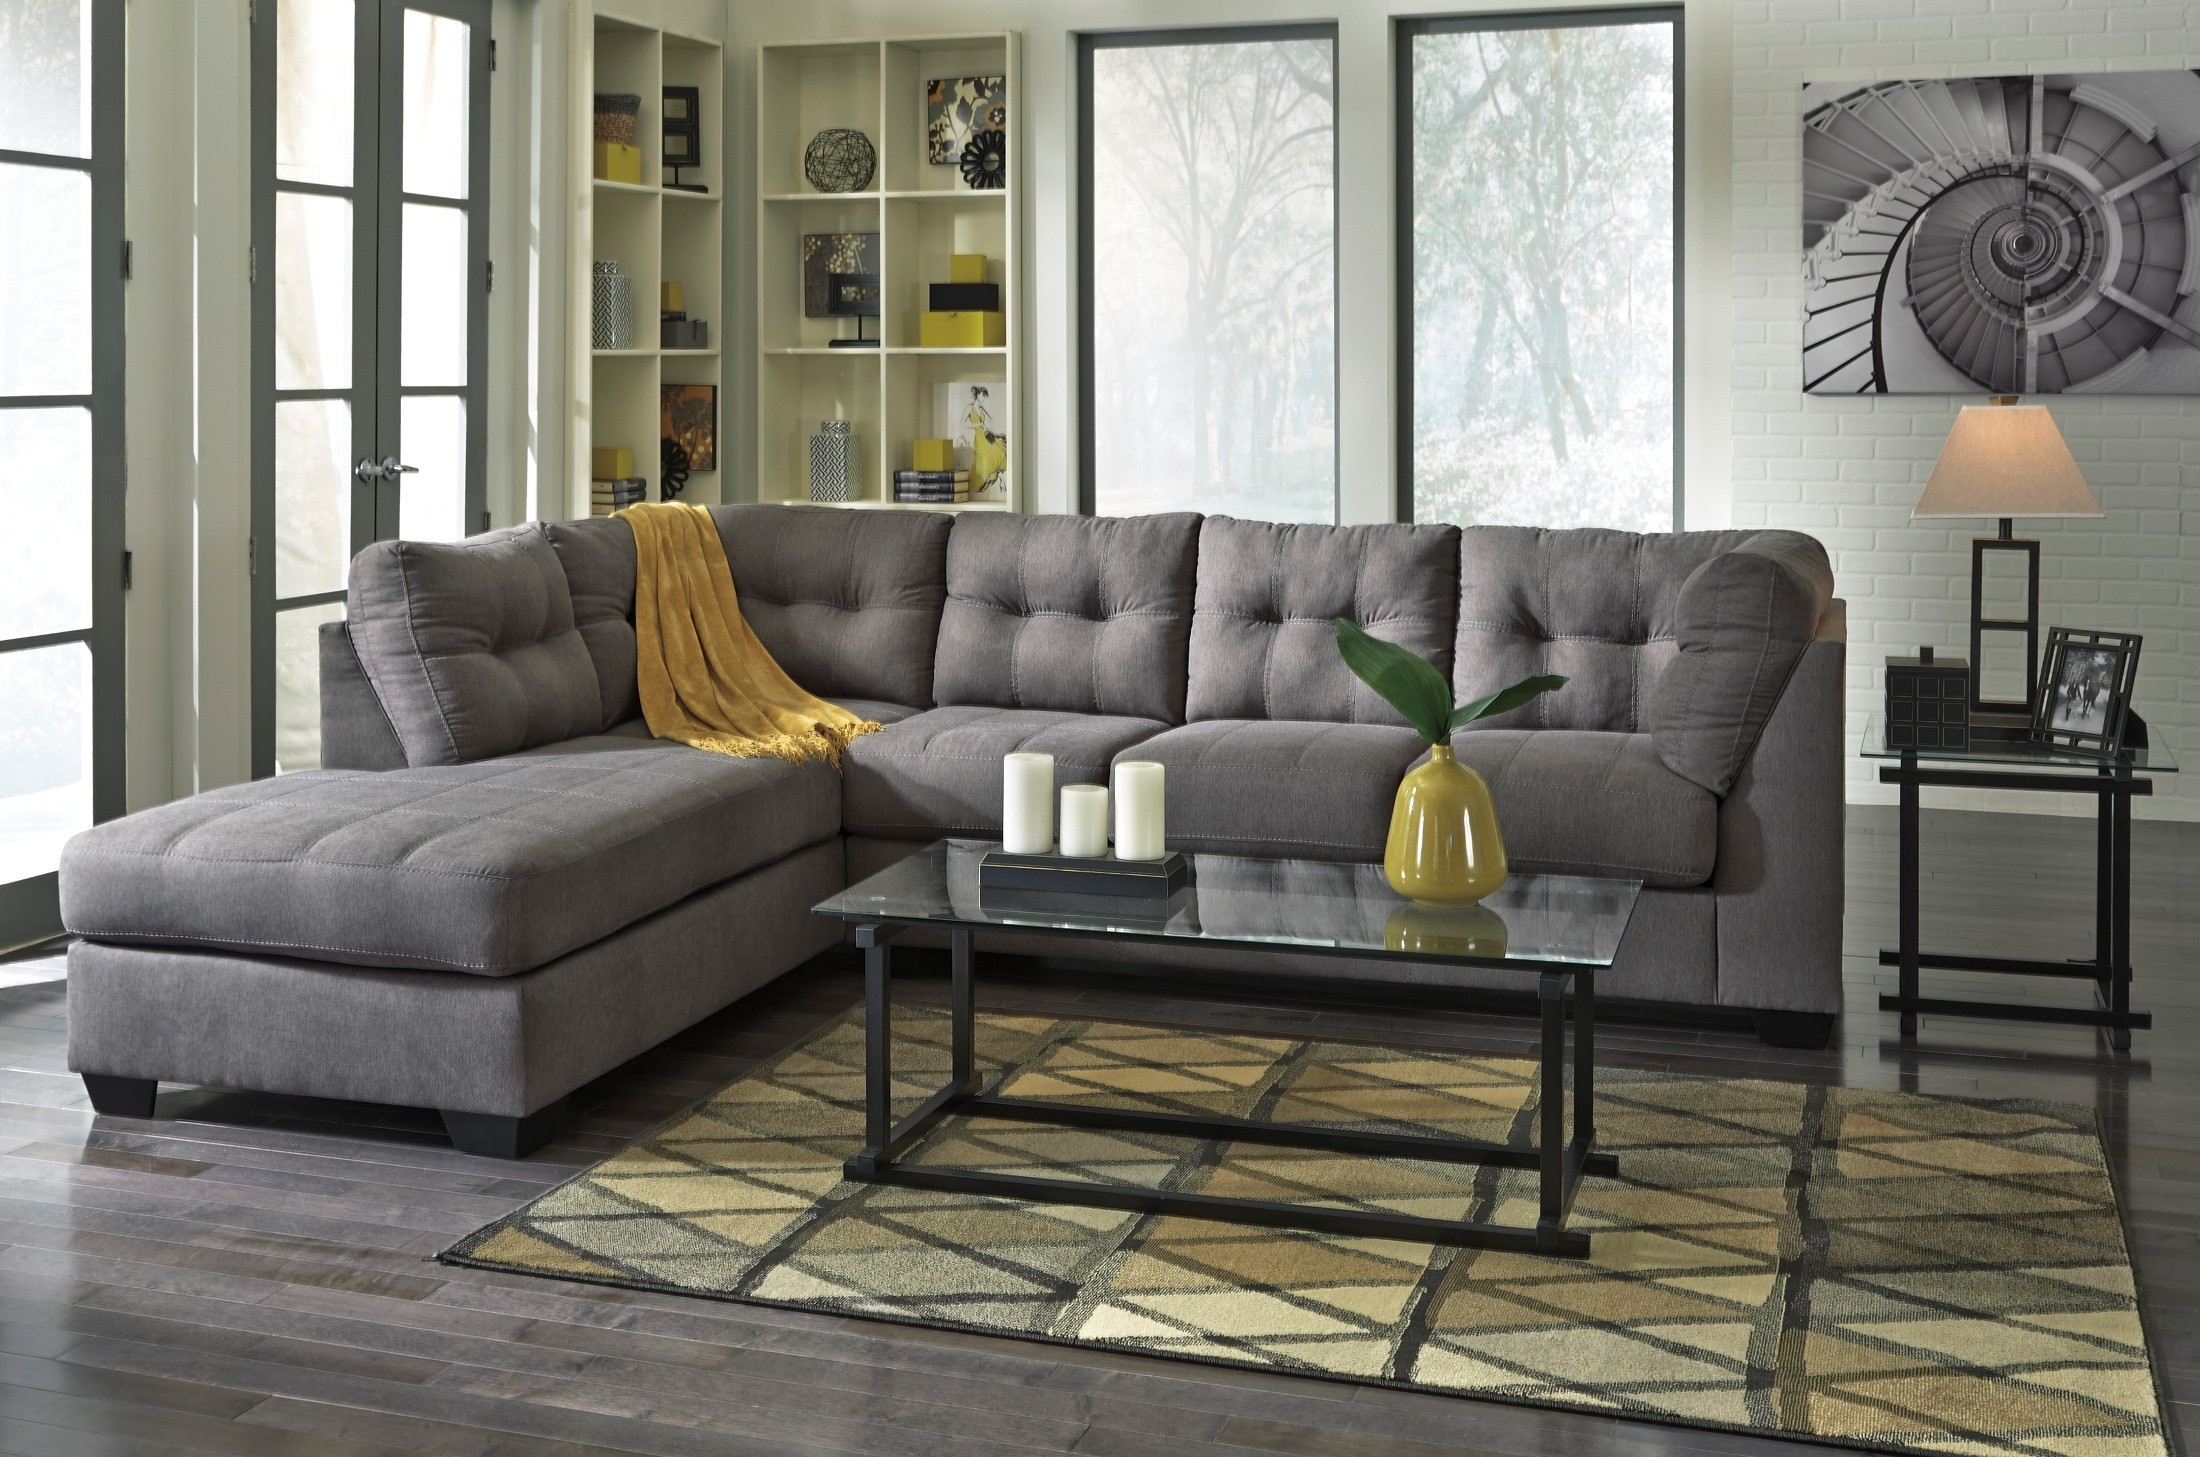 Coleman Intended For Meyer 3 Piece Sectionals With Laf Chaise (Gallery 14 of 20)